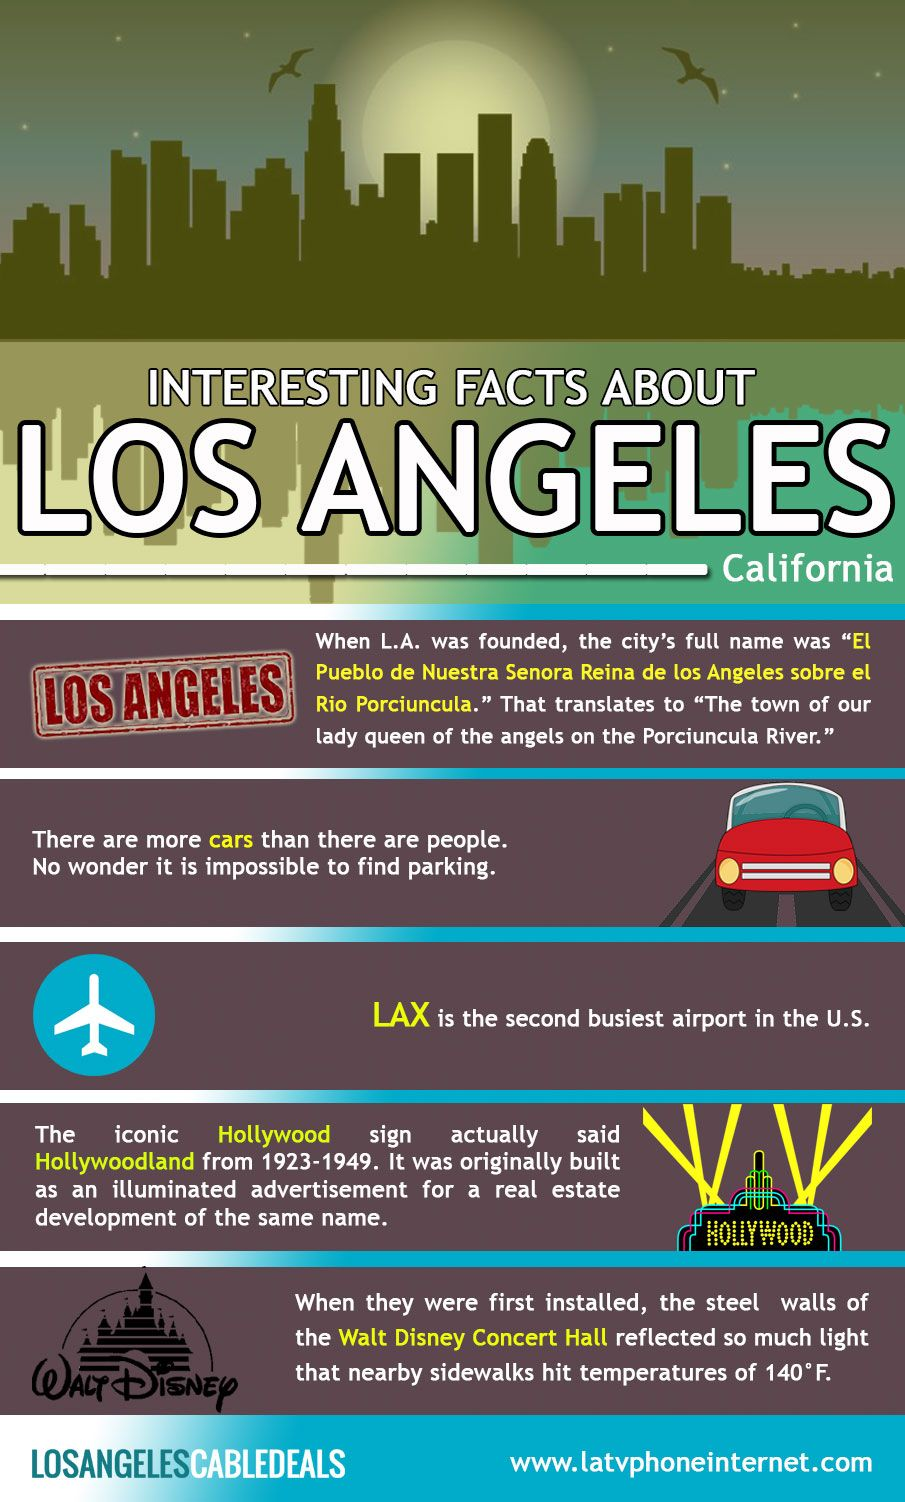 Losangeles La Interestingfacts Los Angeles Cable Deals Order Online Or Call Now 855 809 7407 Www Latvphoneint Fun Facts Los Angeles Los Angeles California